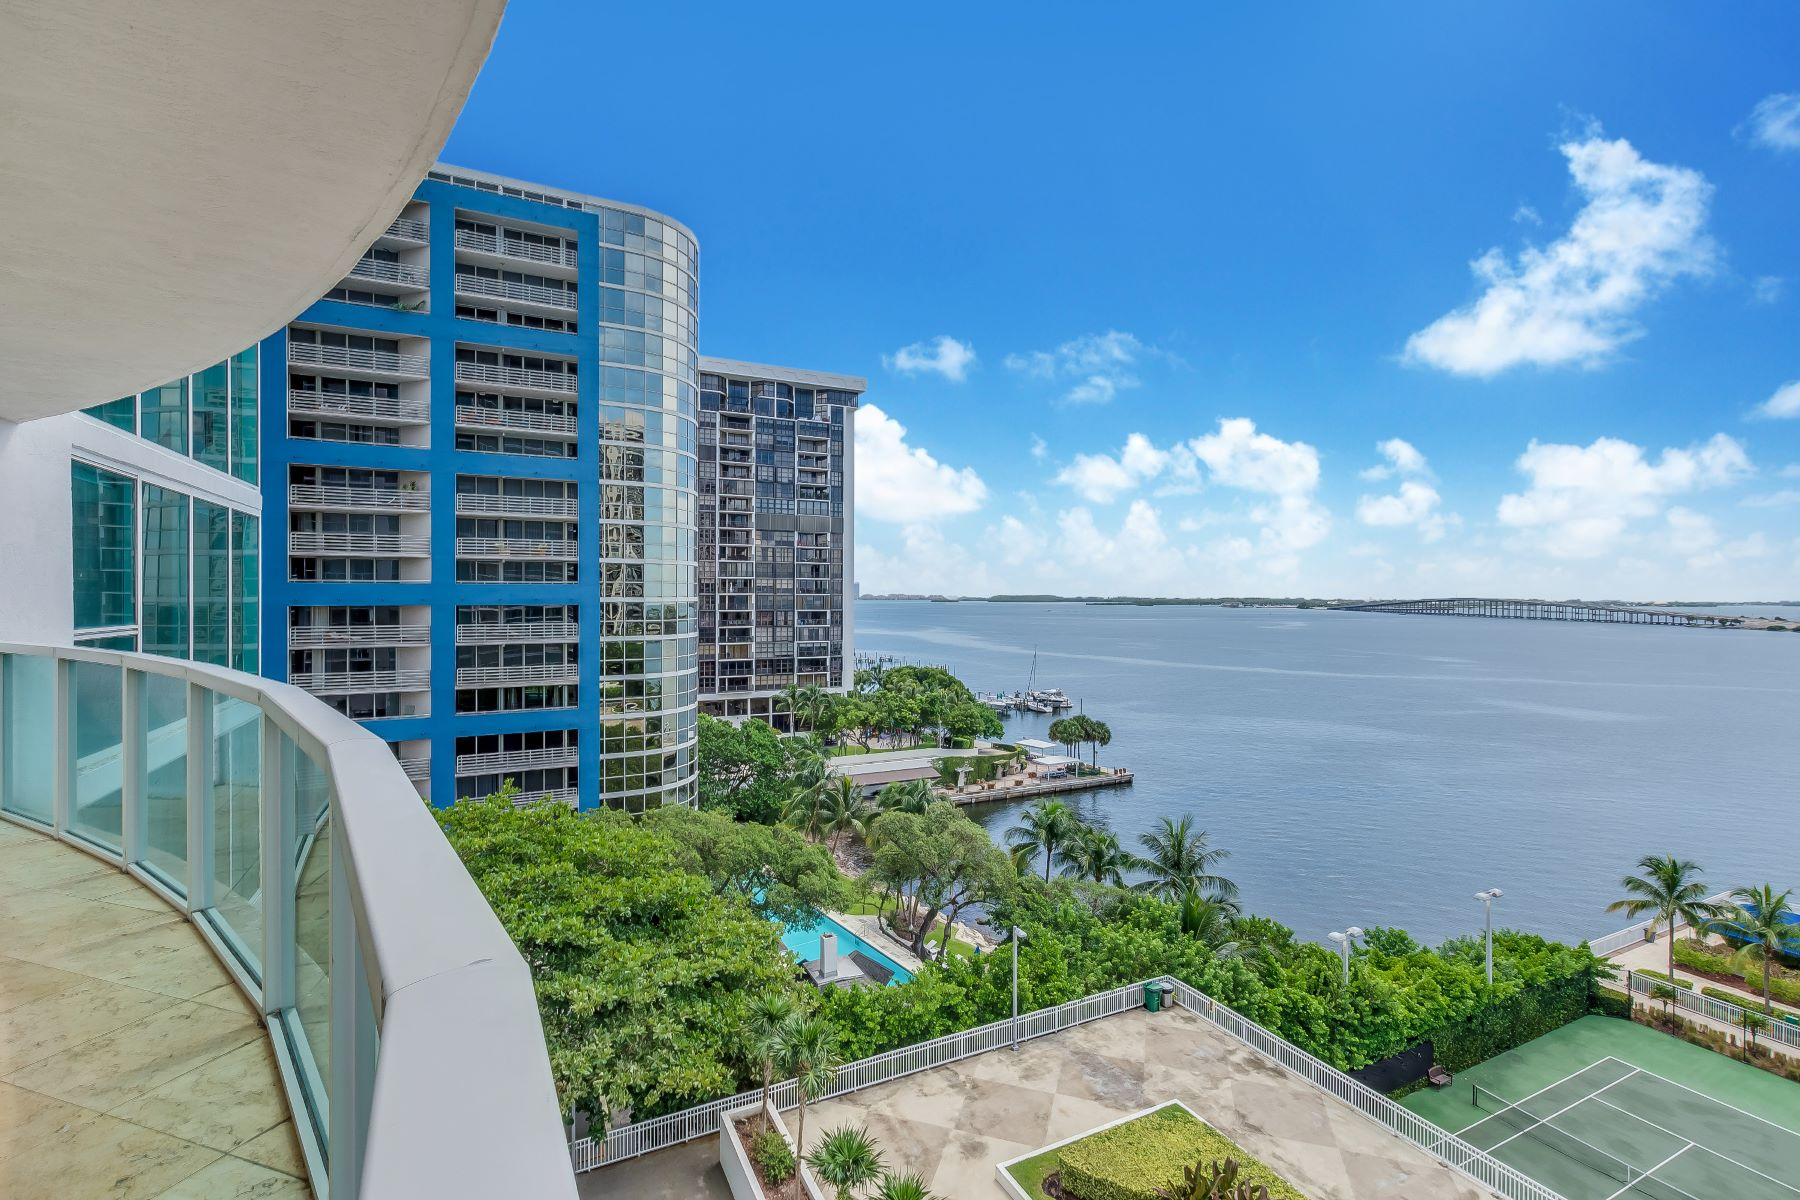 Single Family Home for Sale at 2101 Brickell Avenue #606 2101 Brickell Avenue 606 Miami, Florida, 33129 United States